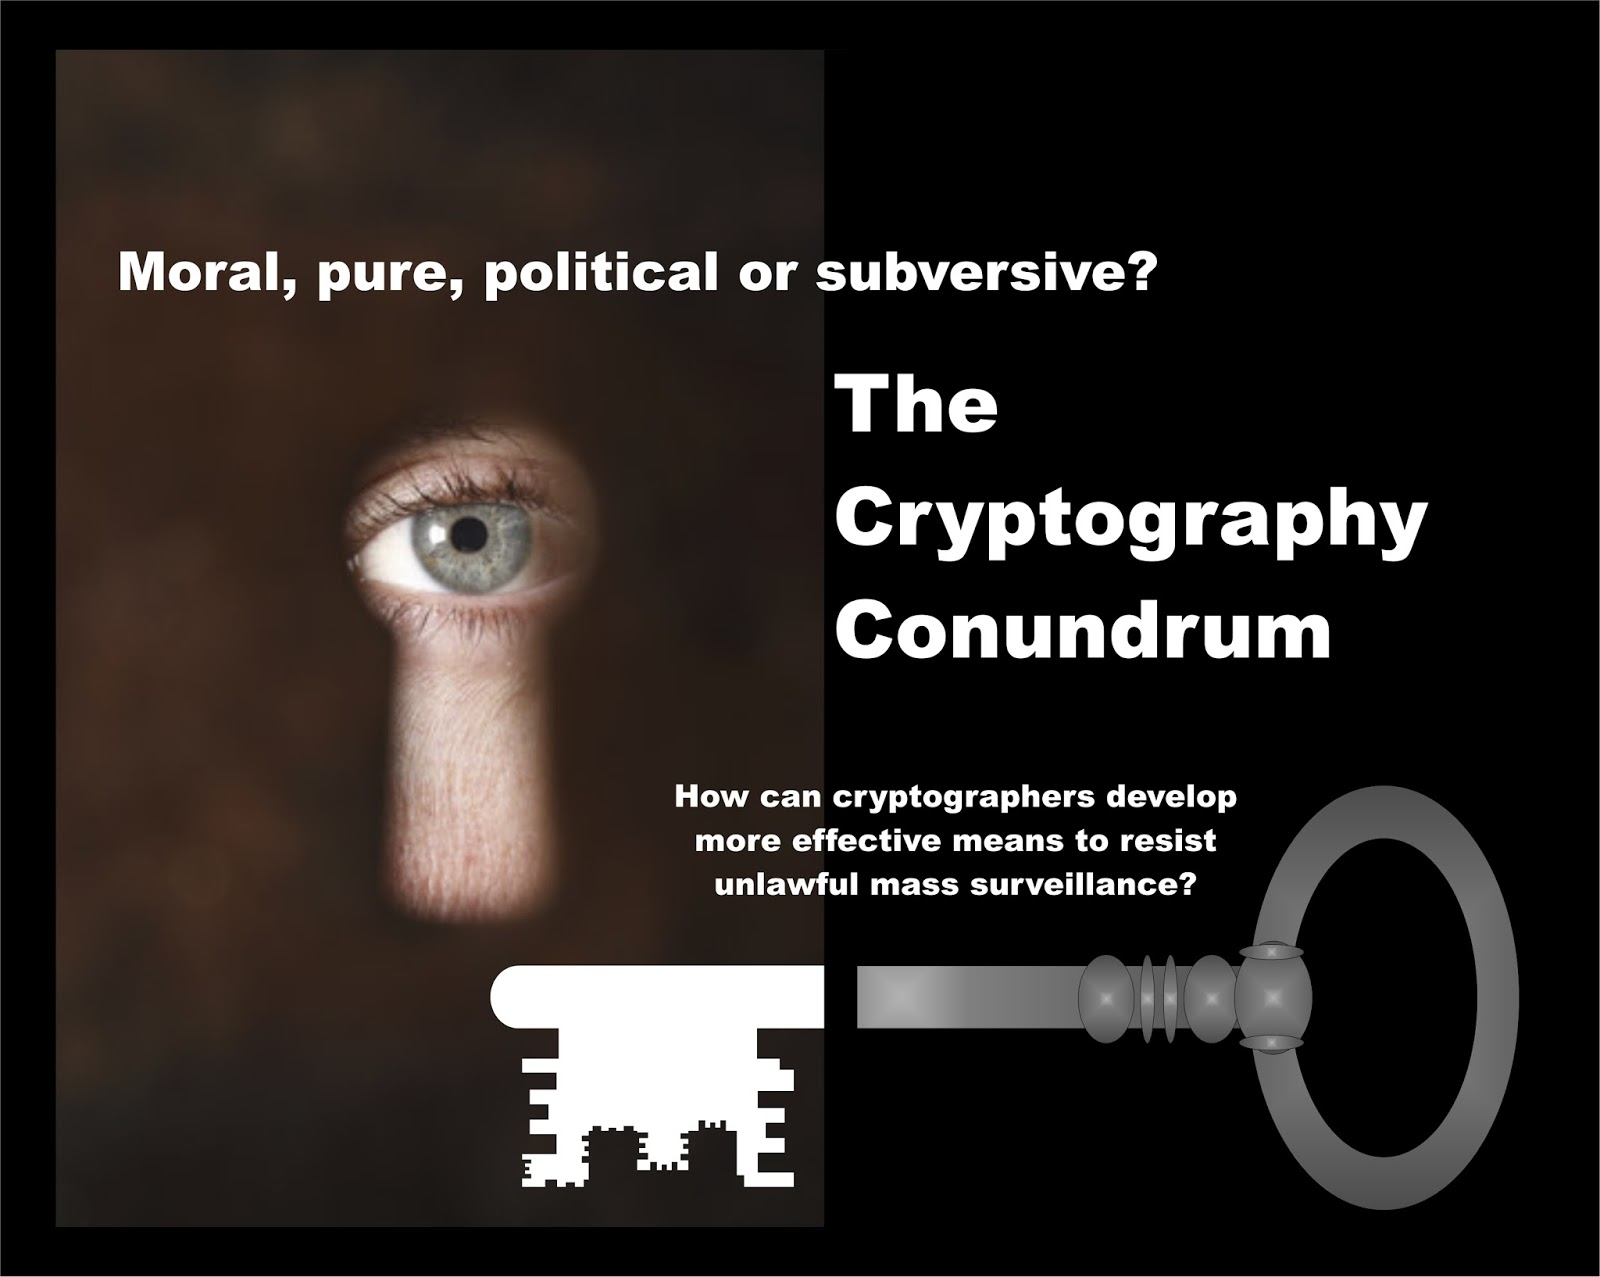 http://alcuinbramerton.blogspot.com/2015/12/the-cryptography-conundrum.html